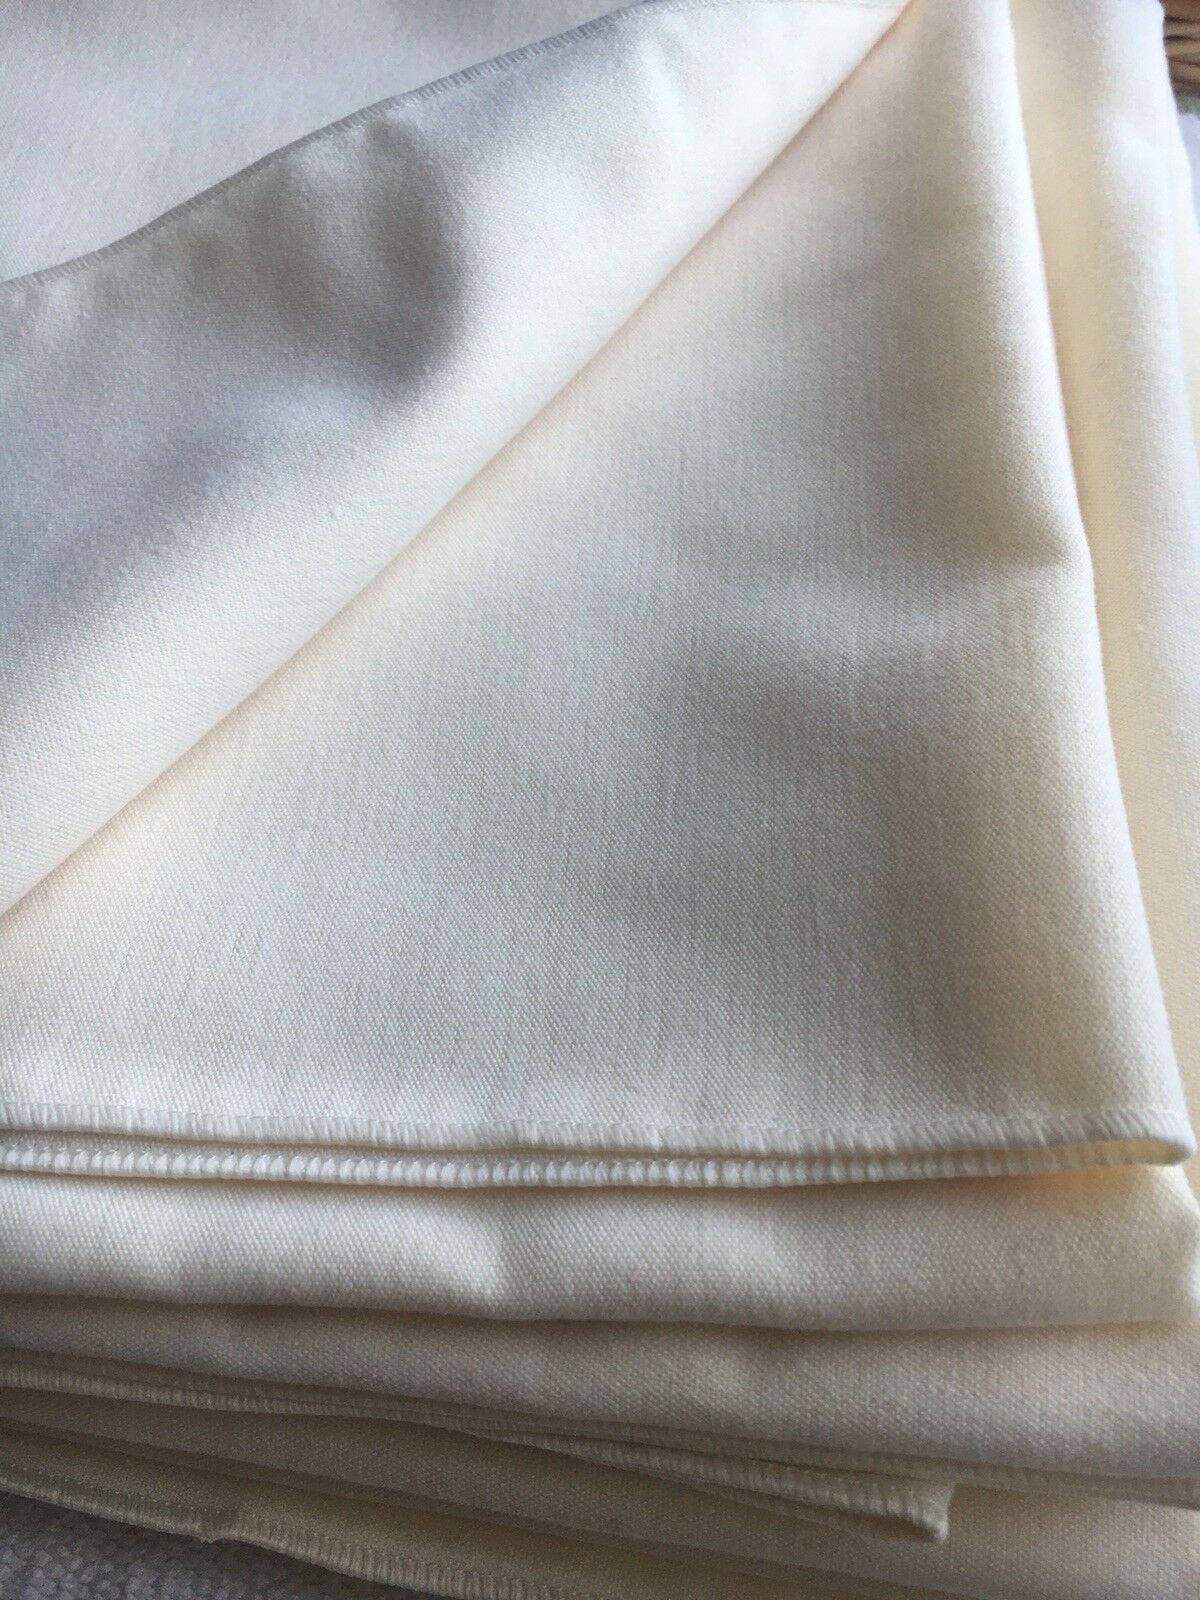 Set of 8 Ivory Table Cloths size 114 x 114 cm